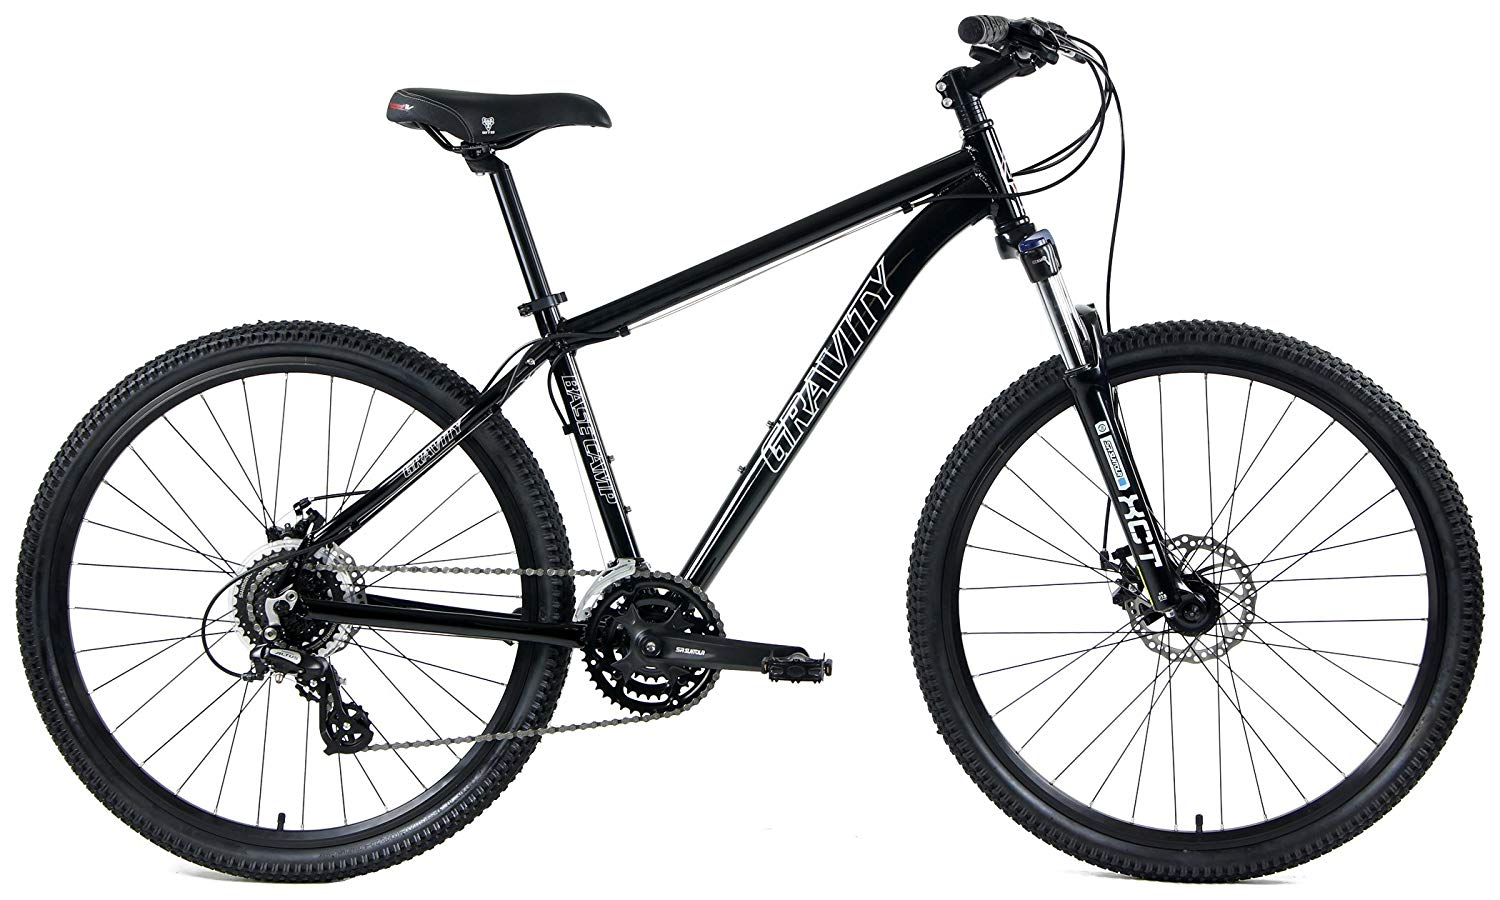 Gravity Basecamp 27.5 Disc Brake 24 Speed Front Suspension Mountain...